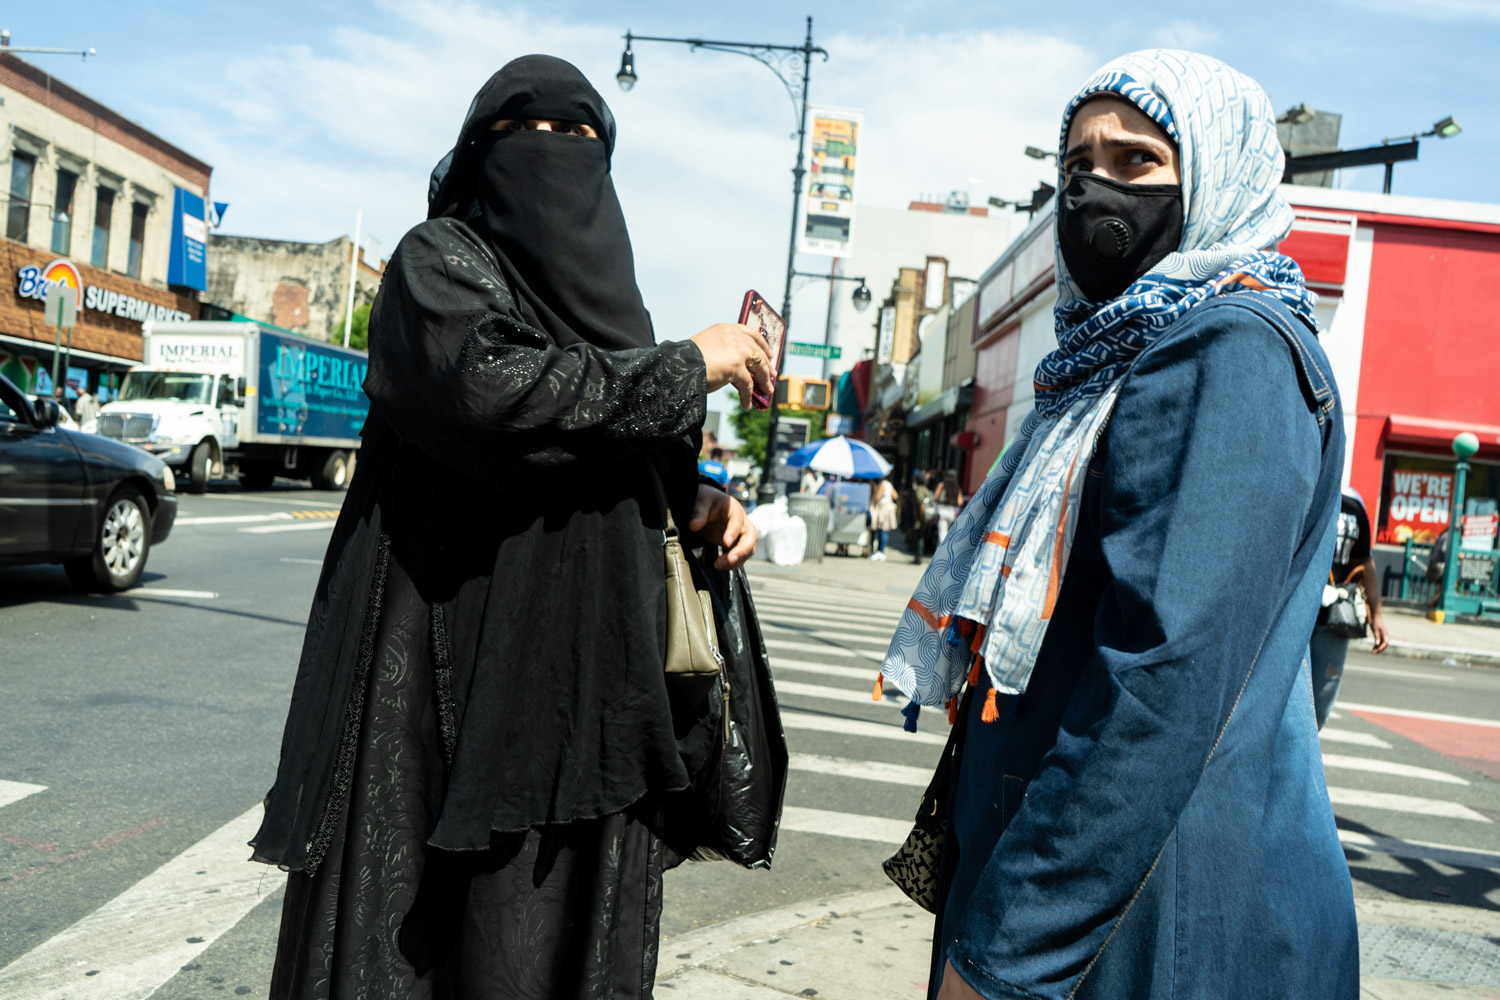 June 16, 2020: Two women on Fulton Street at Nostrand Avenue, Brooklyn, NY. © Camilo José Vergara